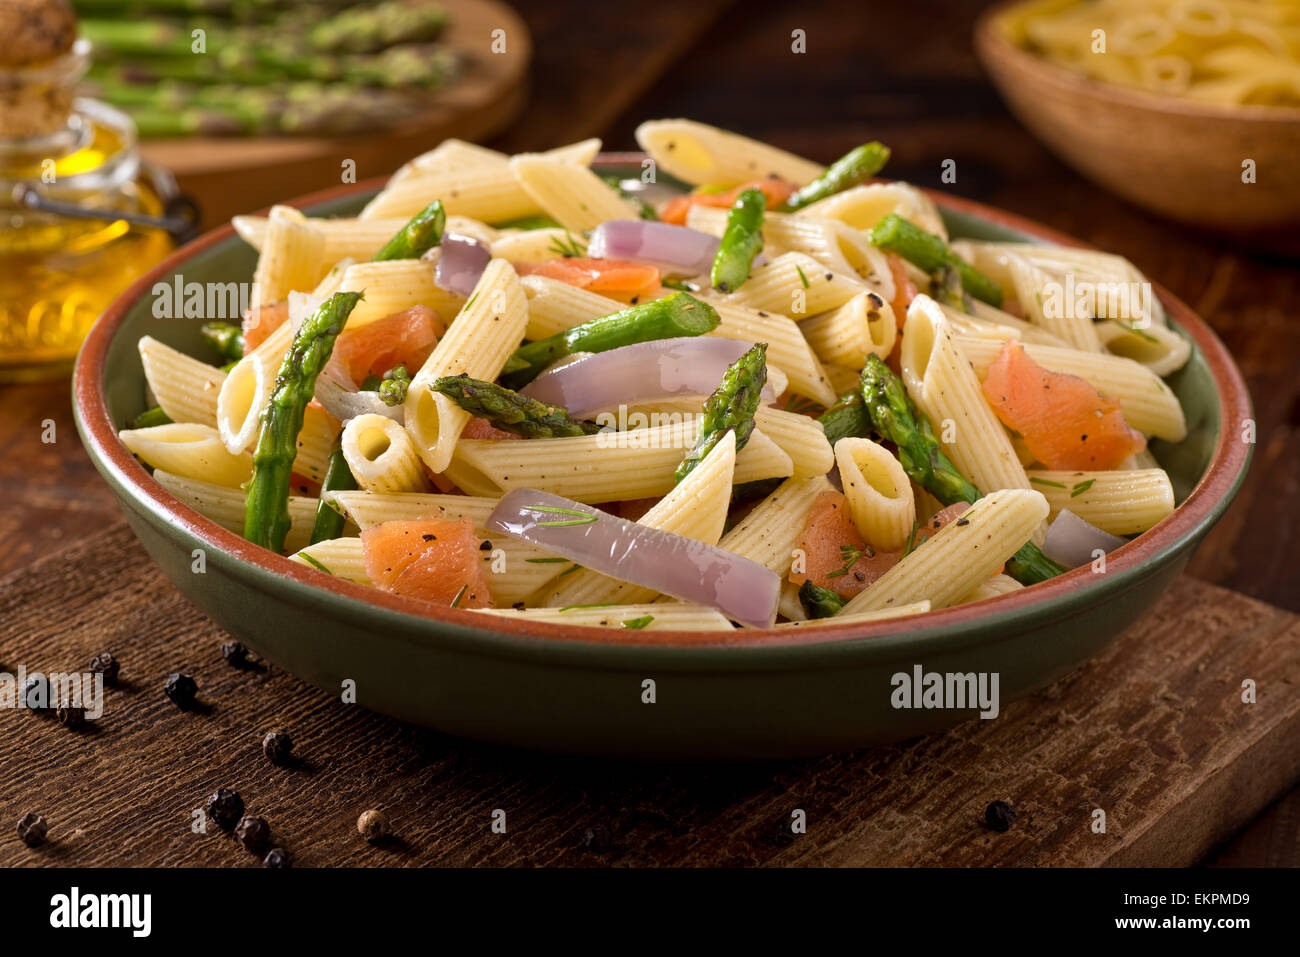 A delicious smoked salmon pasta with penne, asparagus, crushed black pepper, olive oil, and dill. - Stock Image